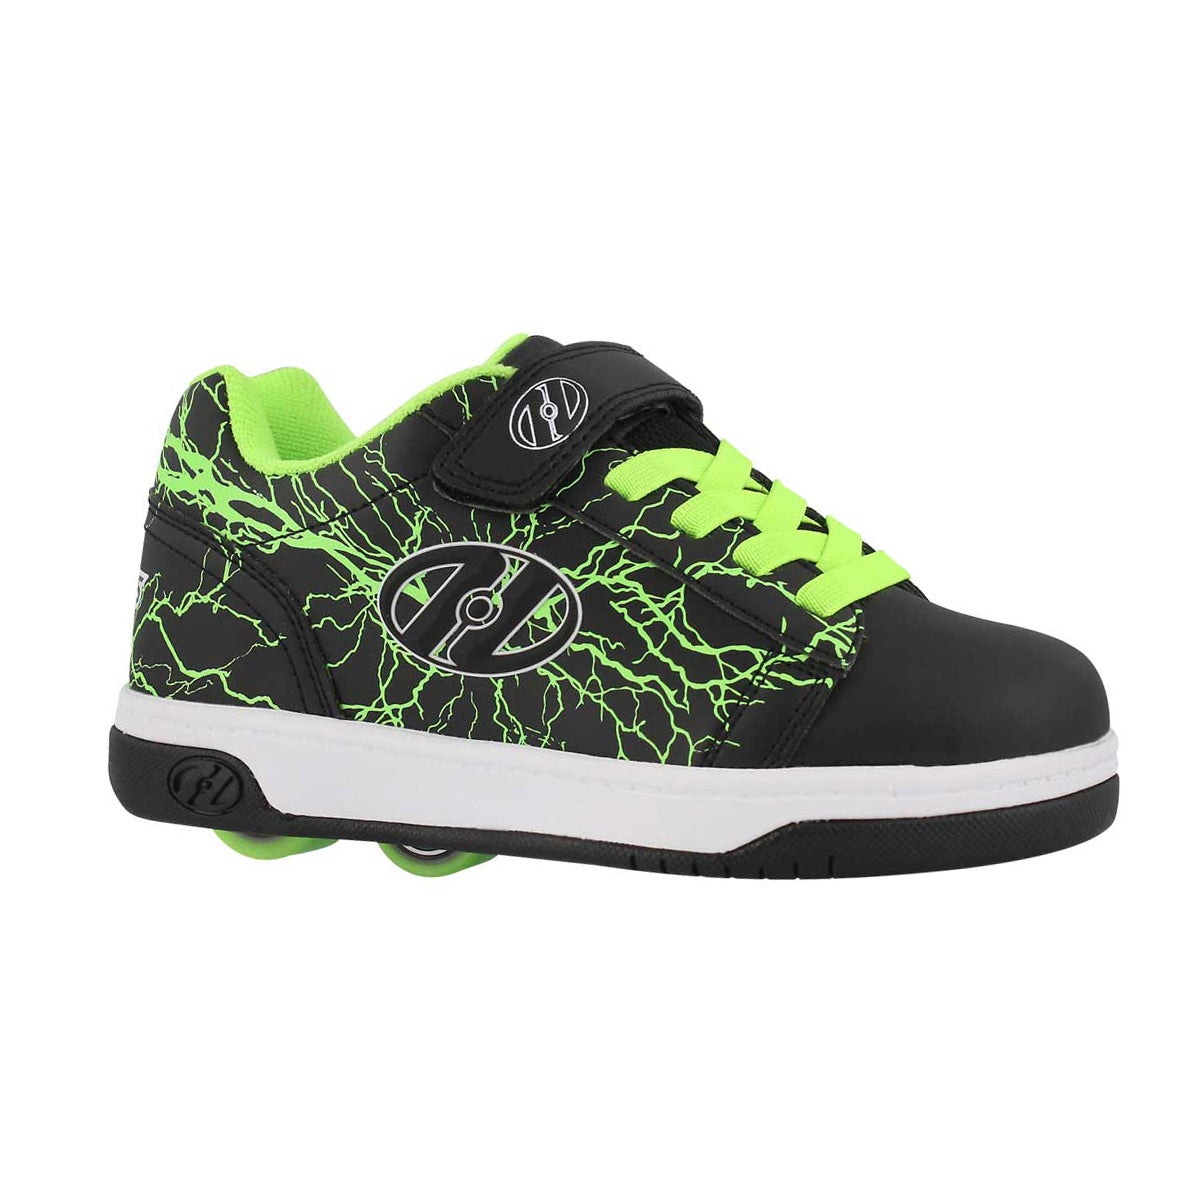 Boys' DUAL UP x2 black/yellow skate sneakers